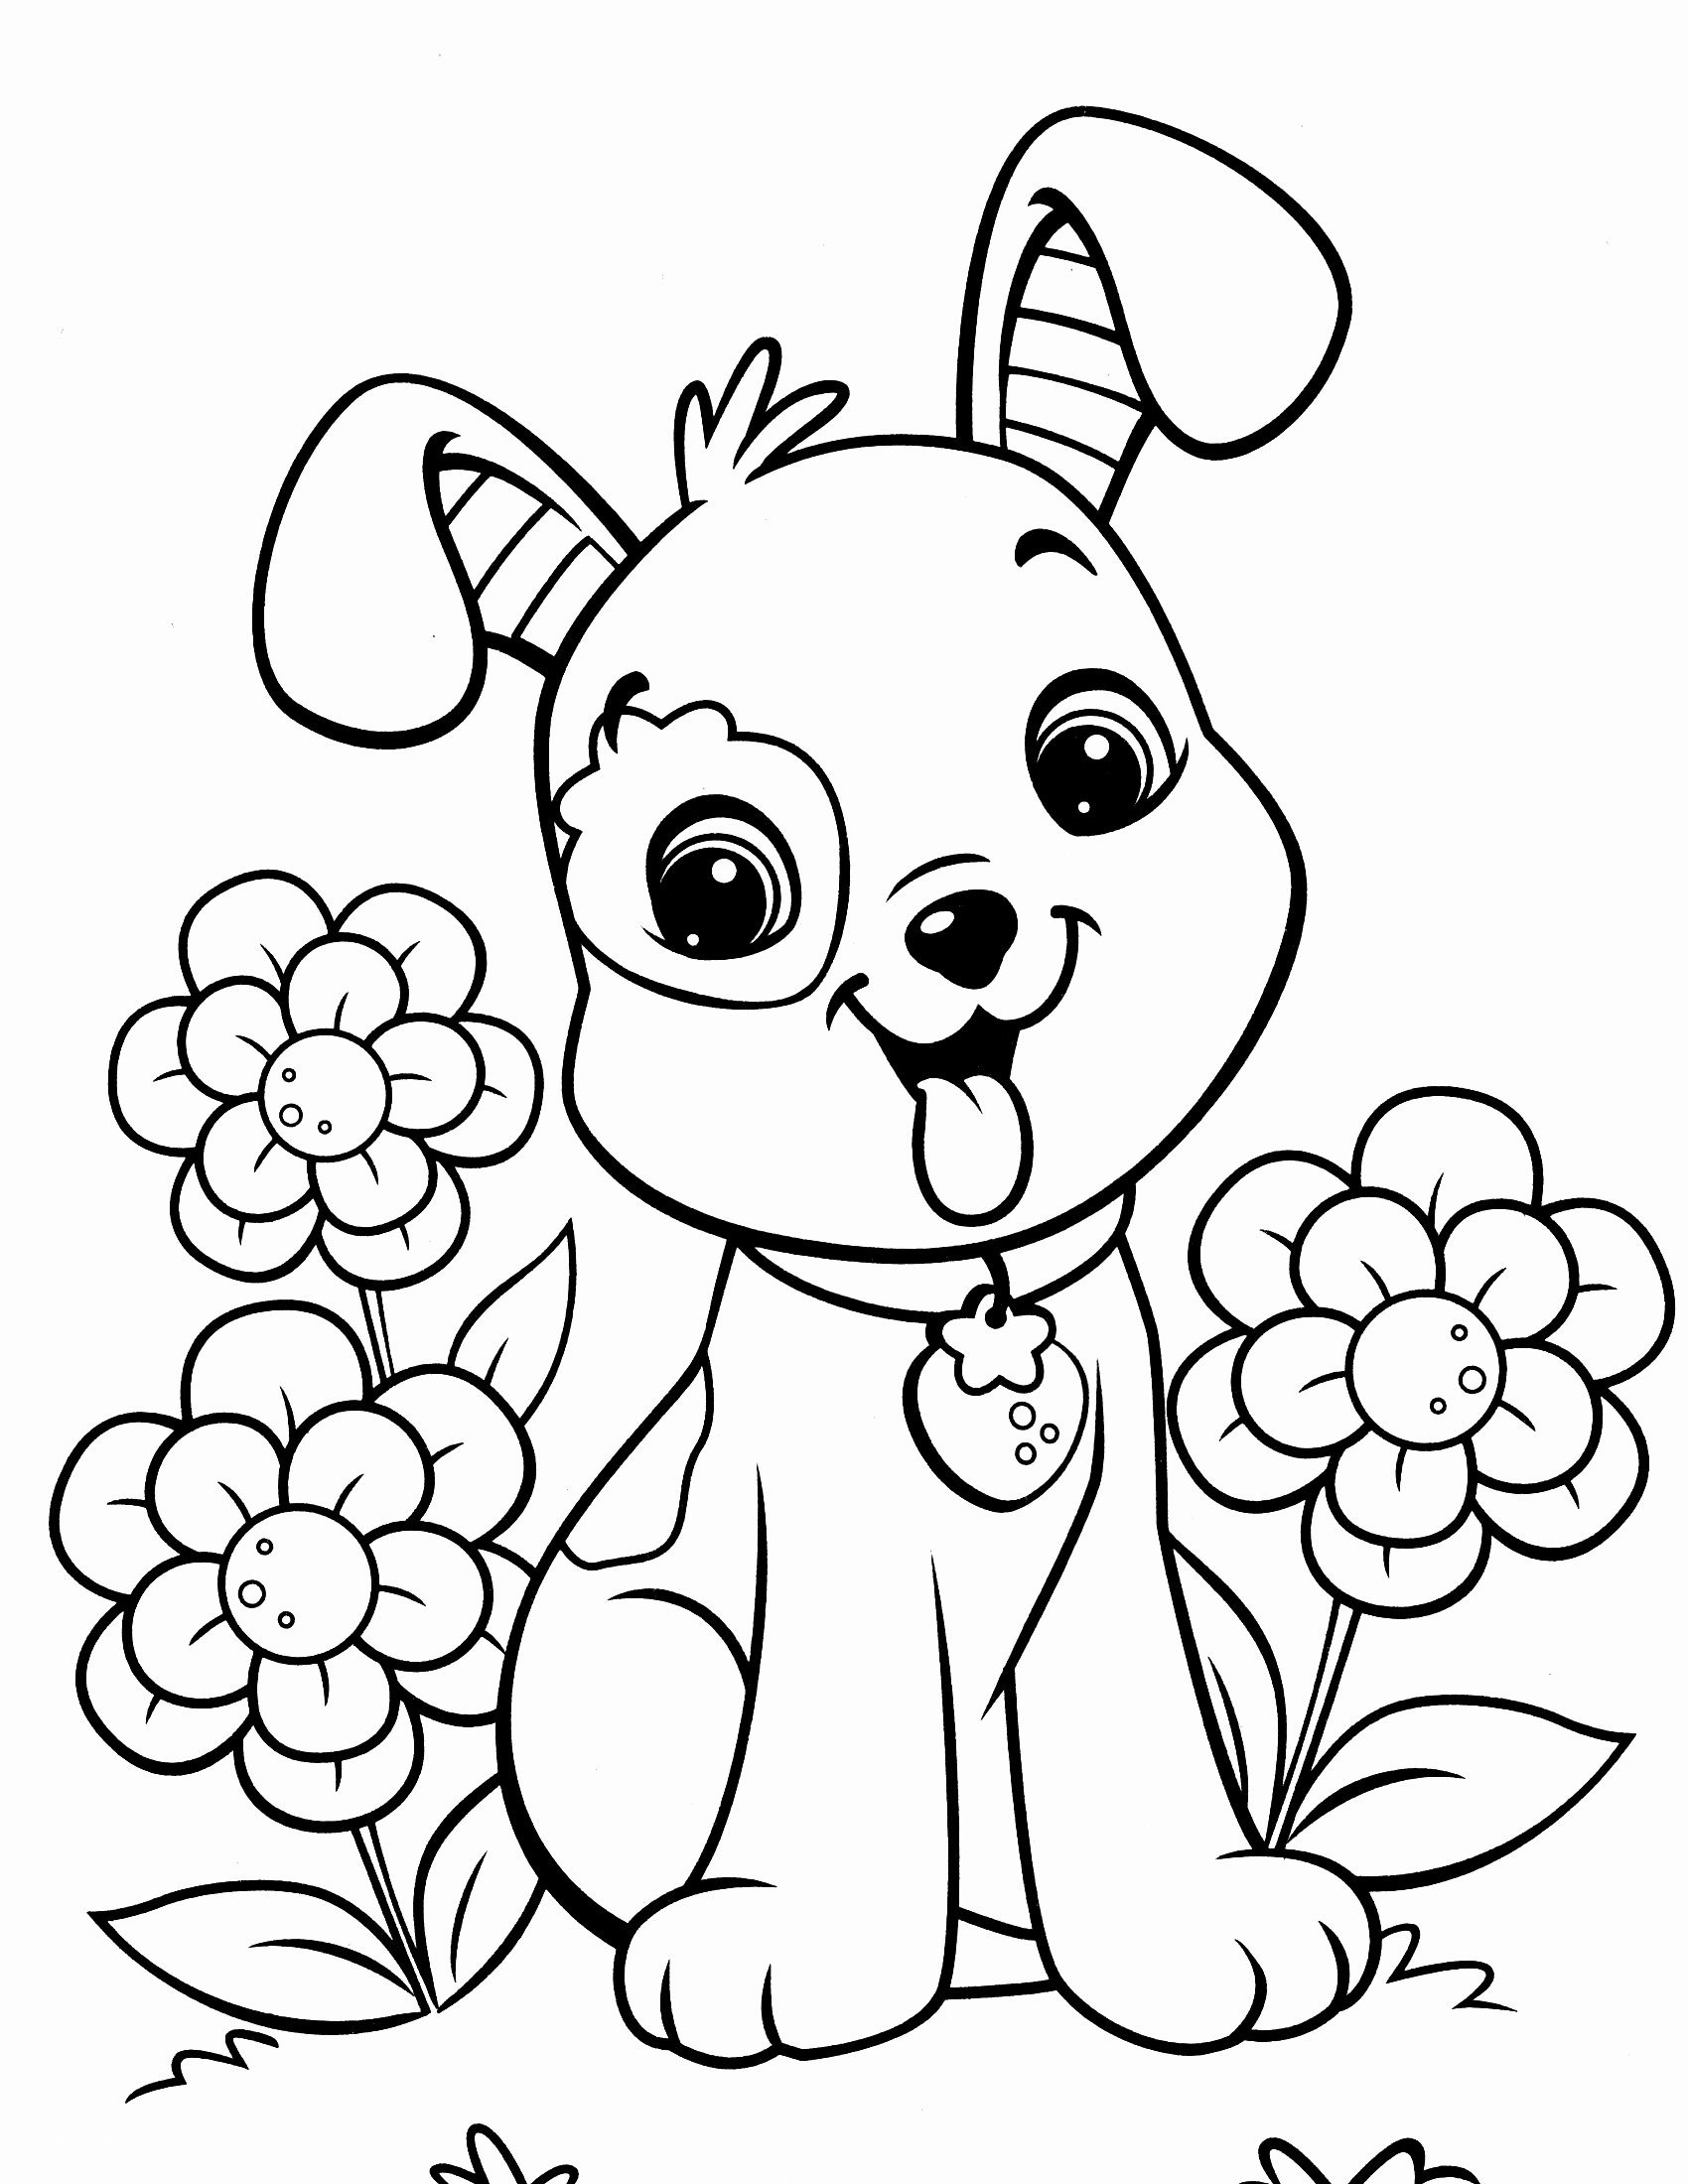 Printg Book Sheets Chip And Potato Potato Coloring Page coloring pages mr  potato head coloring I trust coloring pages.